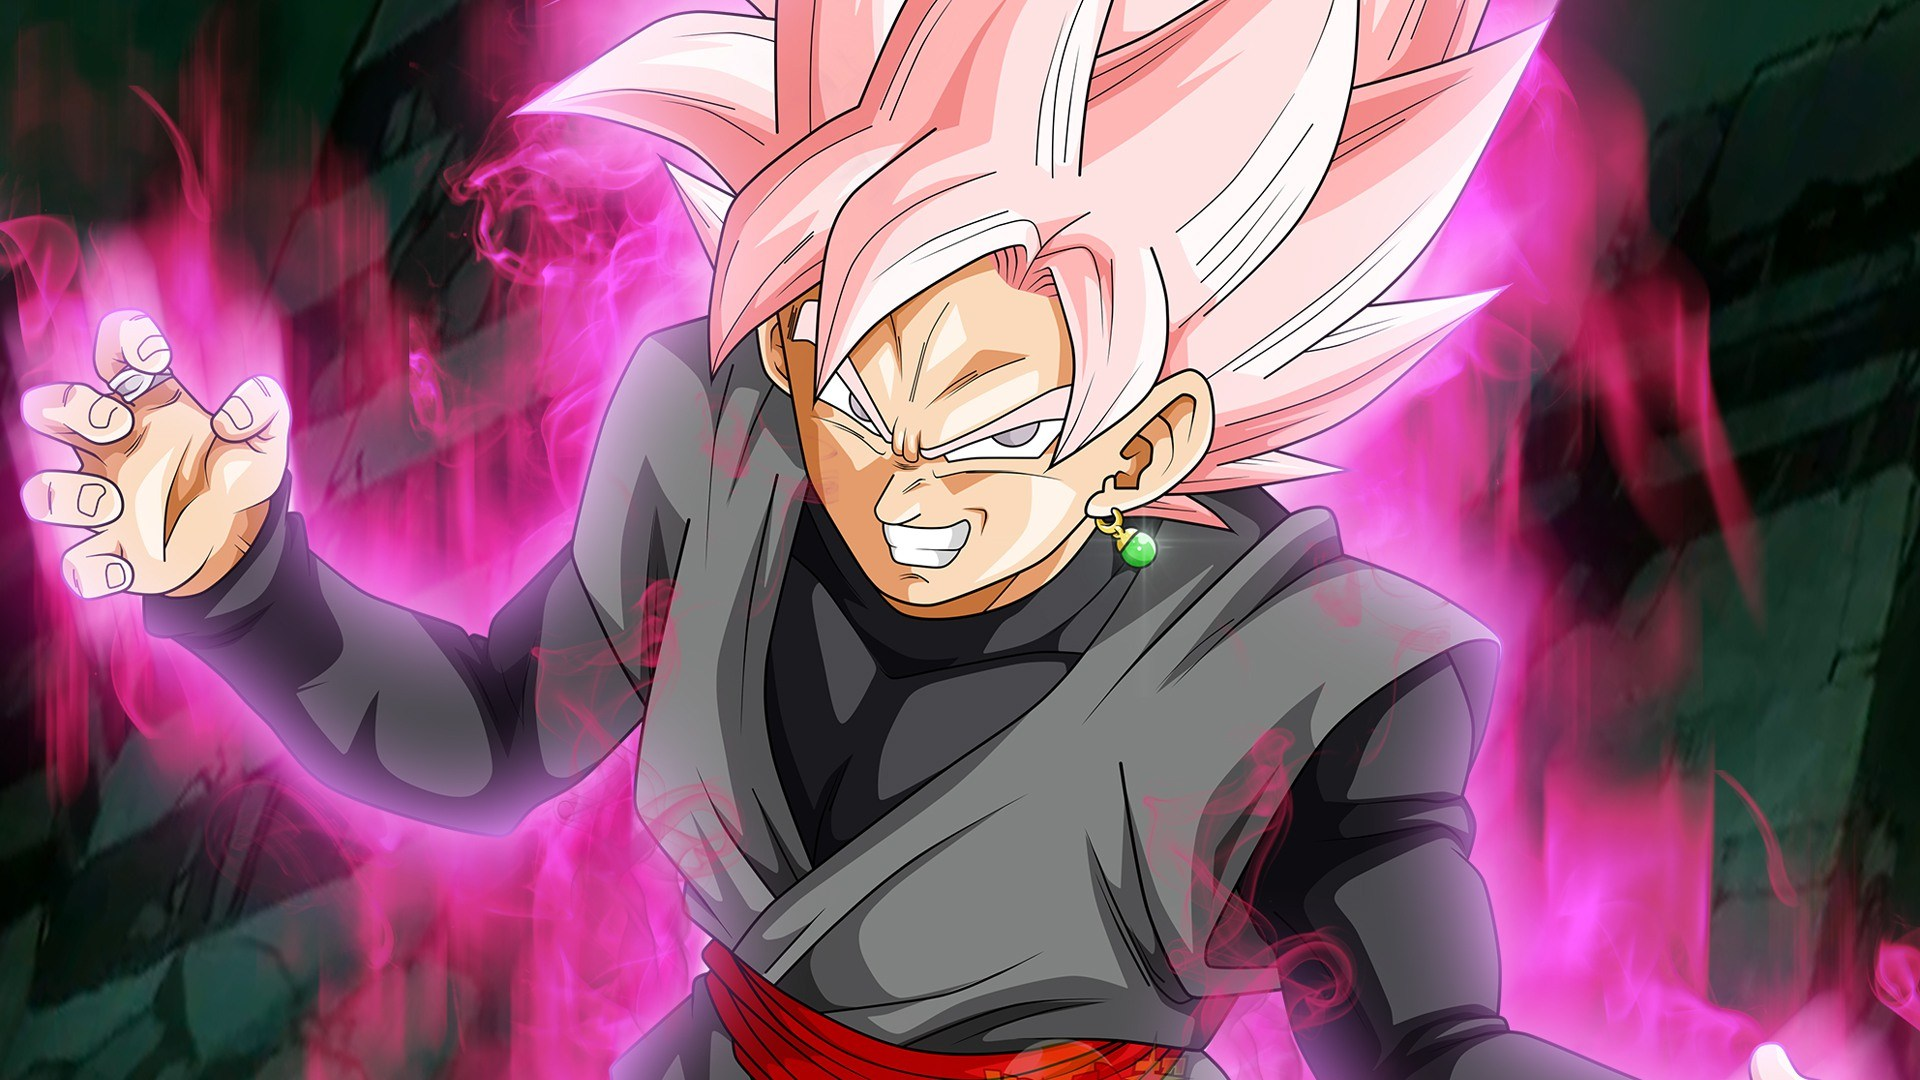 Super Saiyan Rose Goku Black Wallpaper: Goku Black Super Saiyan Rose